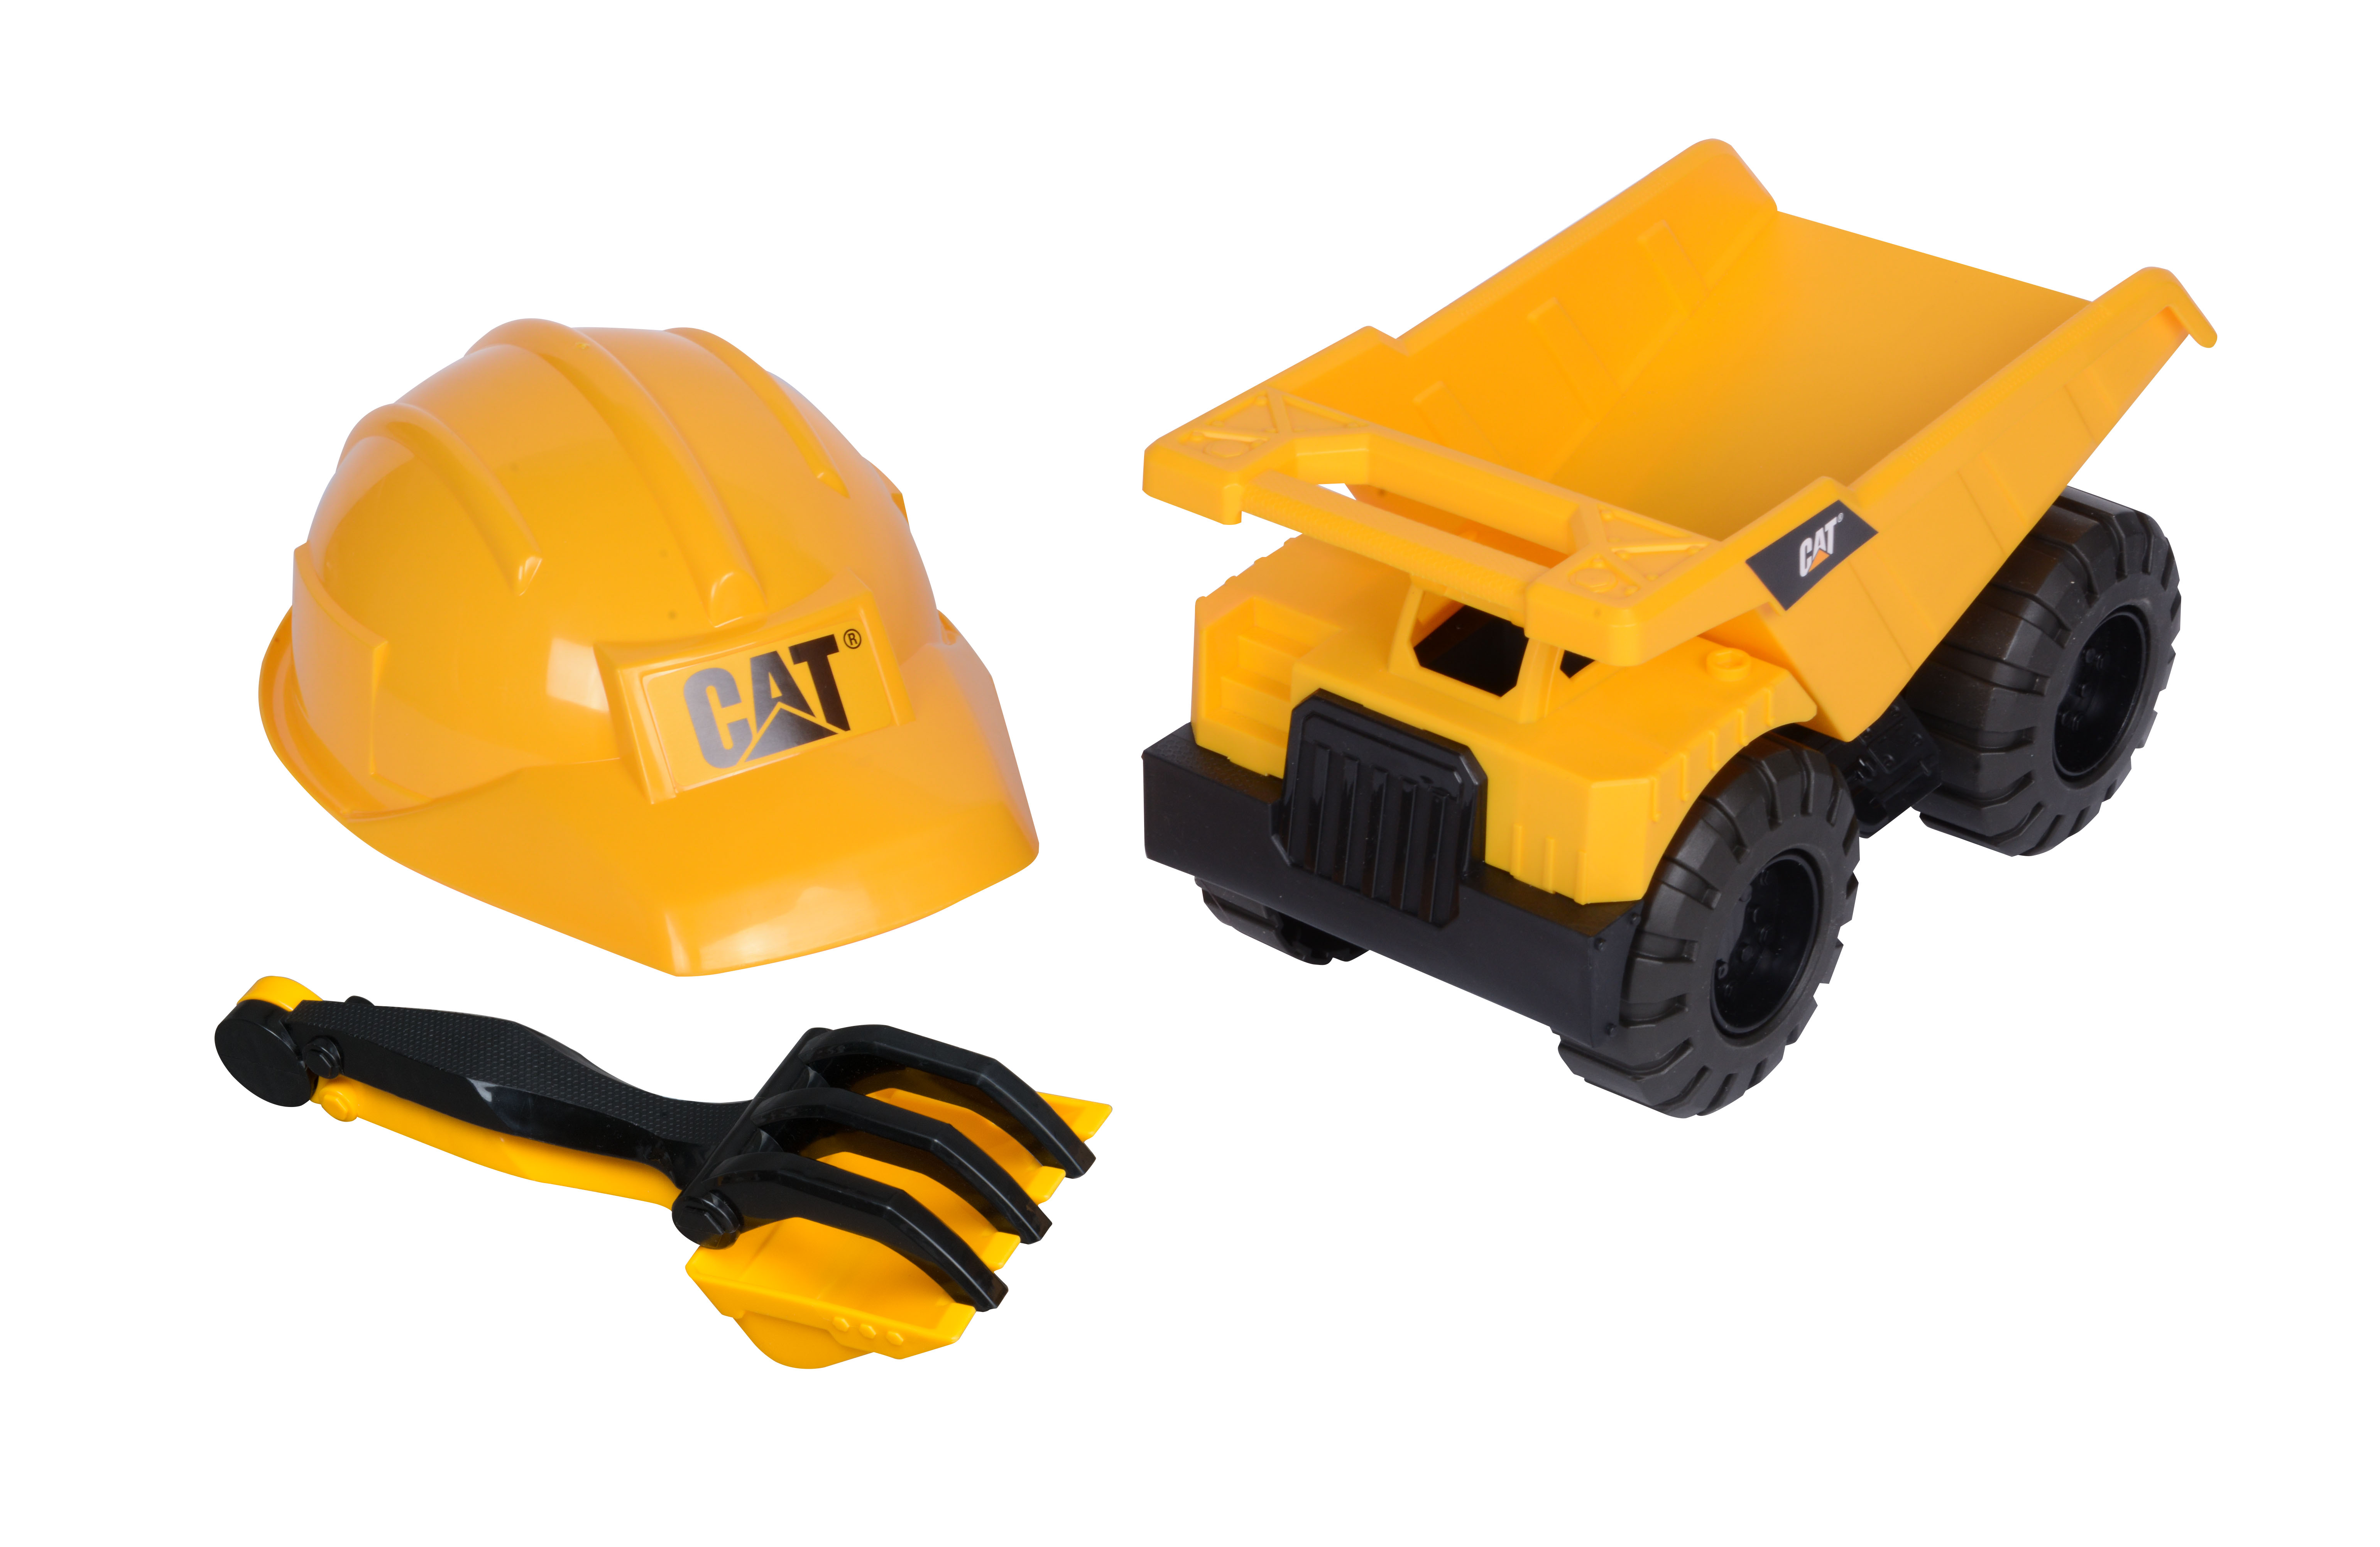 Caterpillar Tough Tracks Construction Crew Dump Truck Sand Set with Rake, Shovel and... by Toy State International Limited